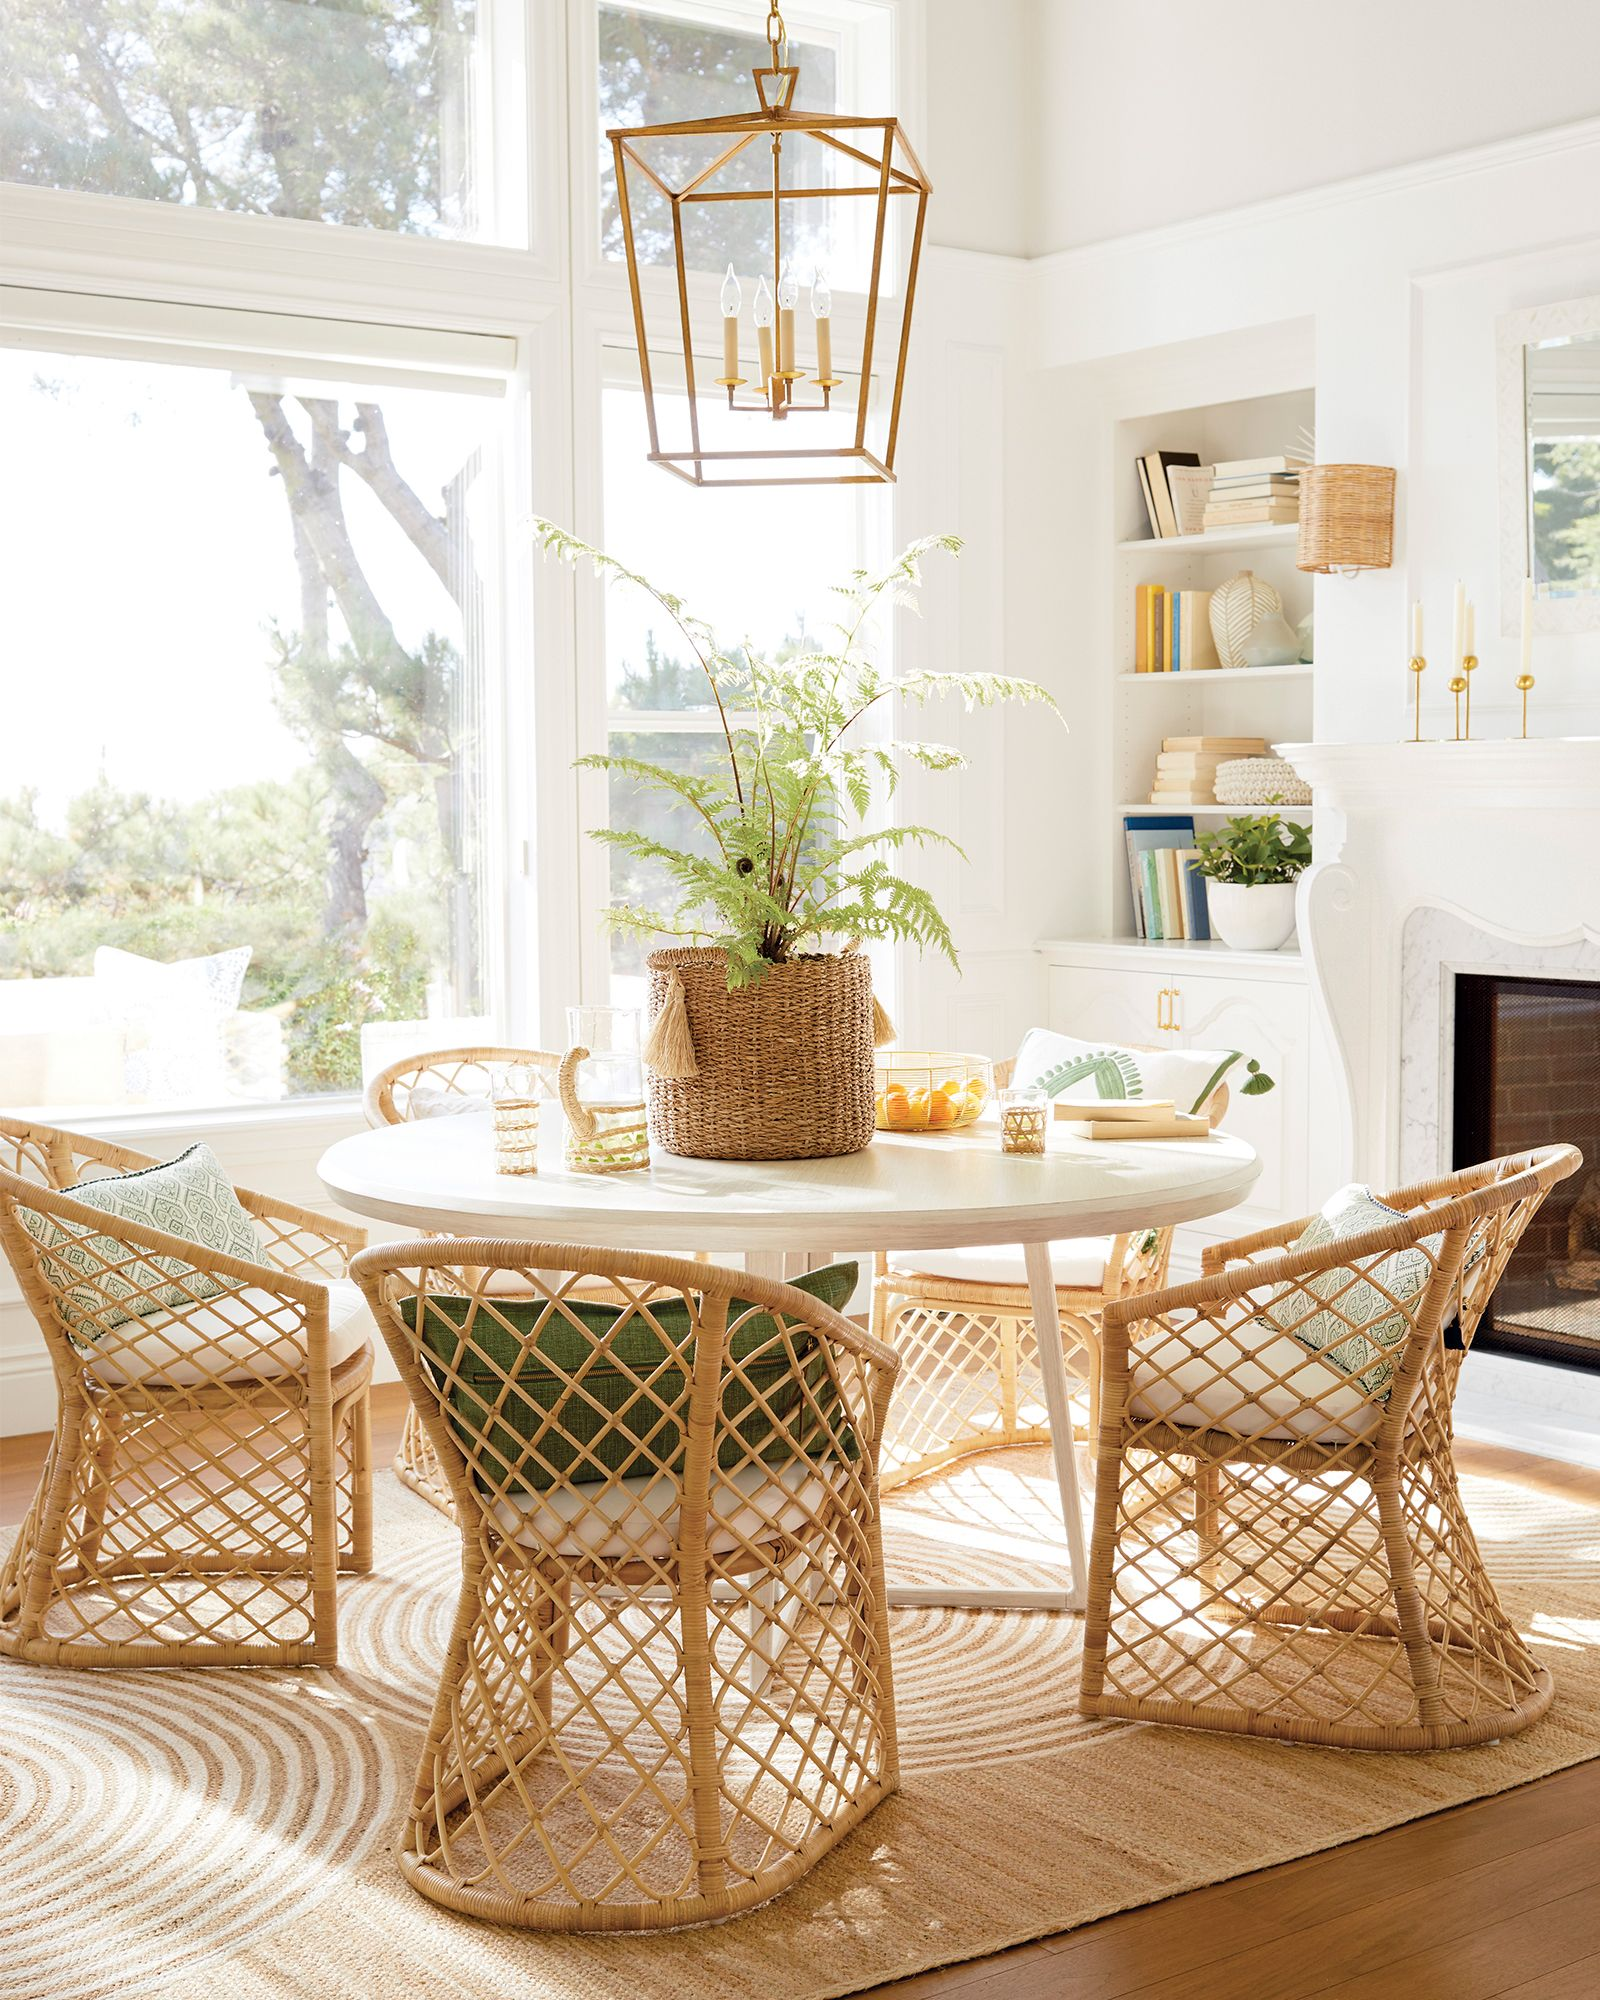 Downing 60 Dining Table Dining Room Decor Round Dining Table